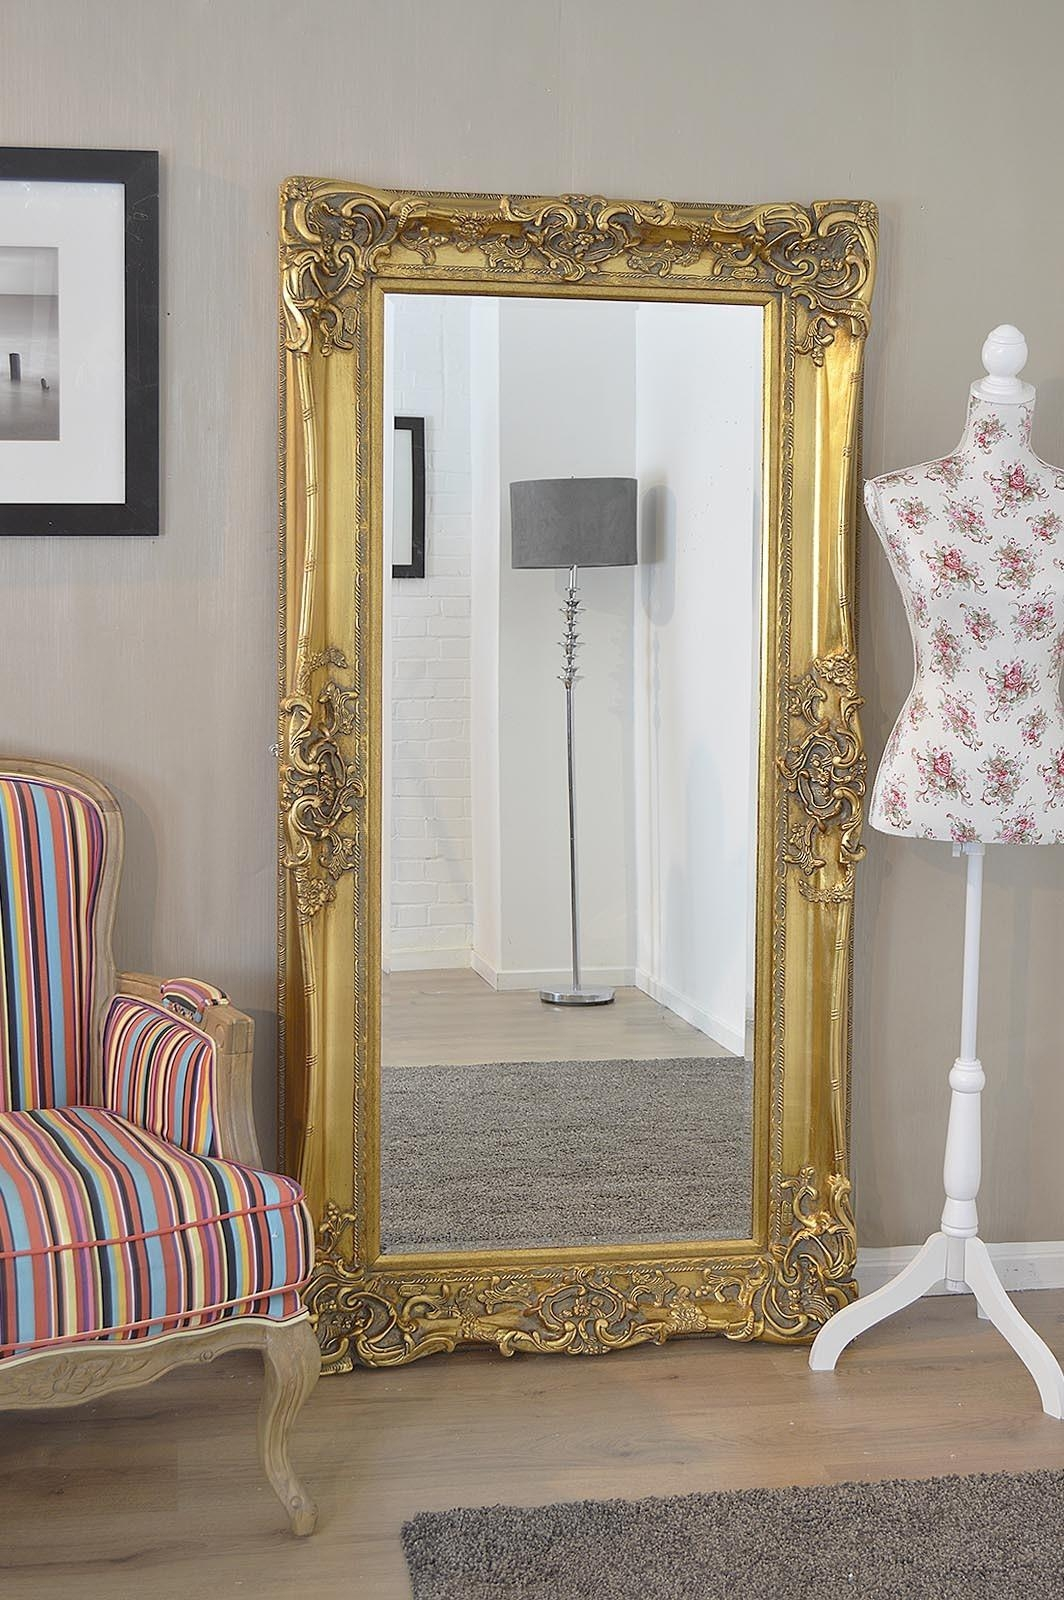 Exceptional Antique Wall Mirror Styles Plus Large Black Framed With Regard To Massive Mirror (Image 10 of 20)